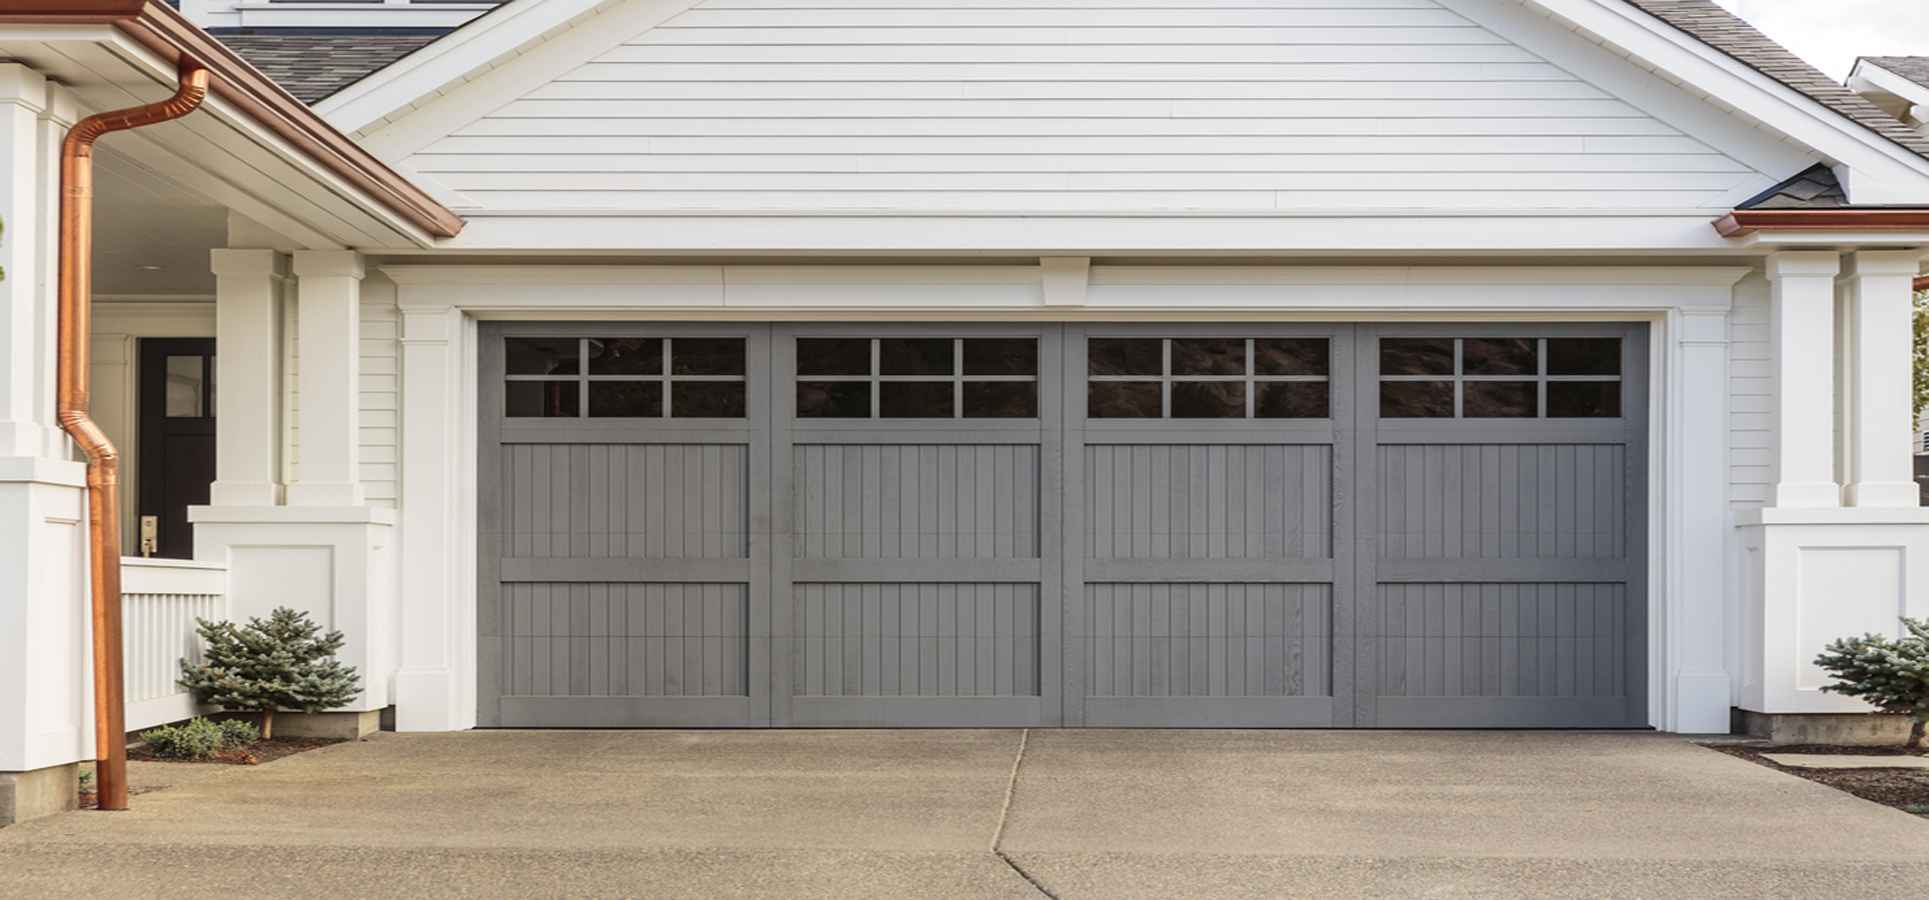 Grey Garage Doors-Garage Door Repair